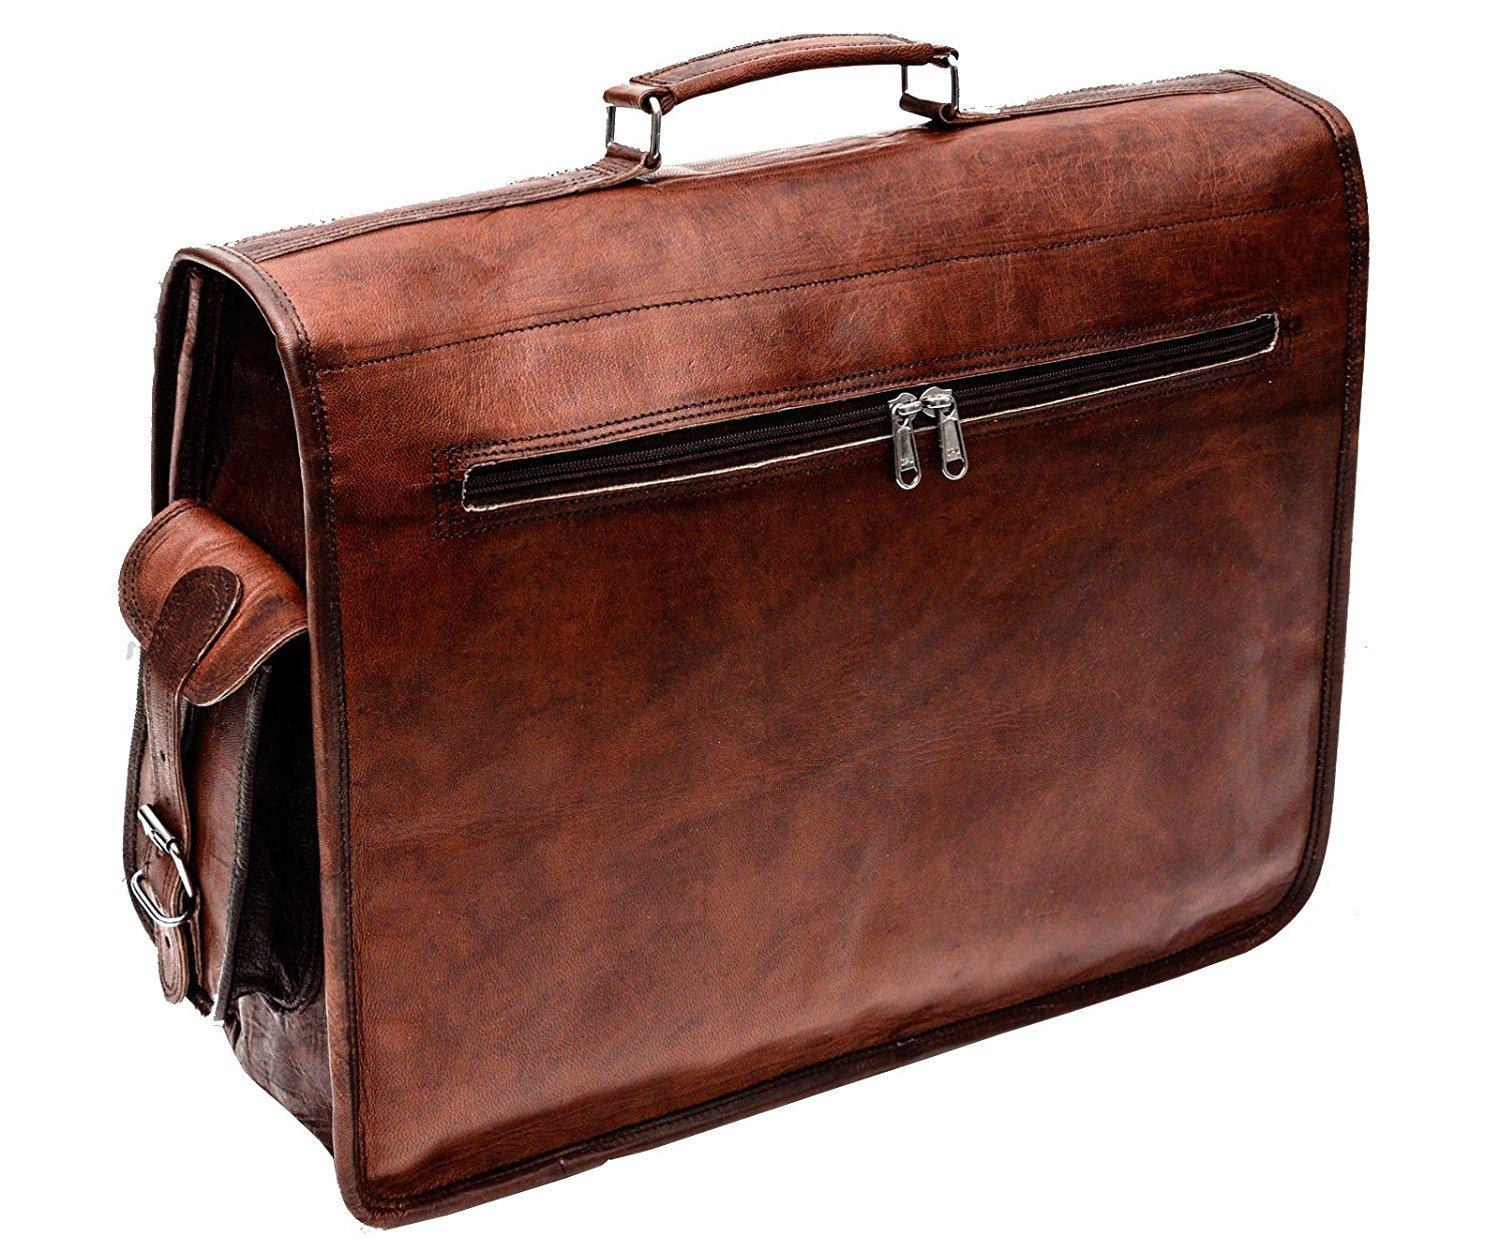 ✅Perfect For Large Laptops - This Leather laptop bag is perfect for  carrying larger laptops including most 17 inch laptops. baf0043d57e0b